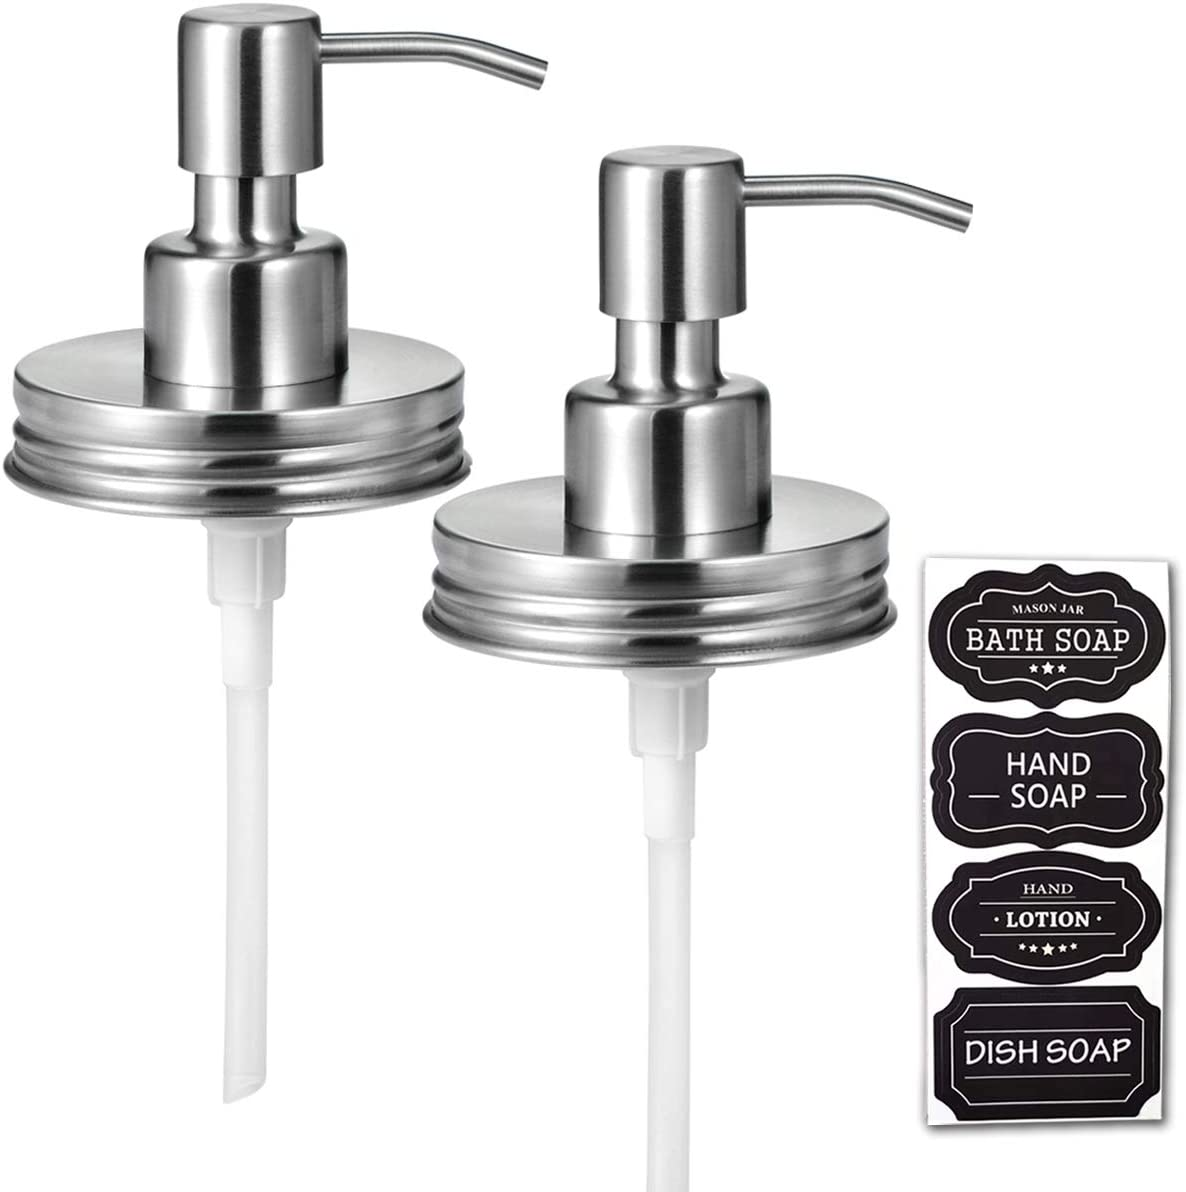 Mason Jar Liquid Soap Dispenser Lids(2) –Premium Rust Proof Stainless Steel - Modern Farmhouse Decor for Kitchen & Bathroom, Liquid Soap Pumps for Hand Soap,Dish Soap, Lotions / Brushed Nickel-2 Pack